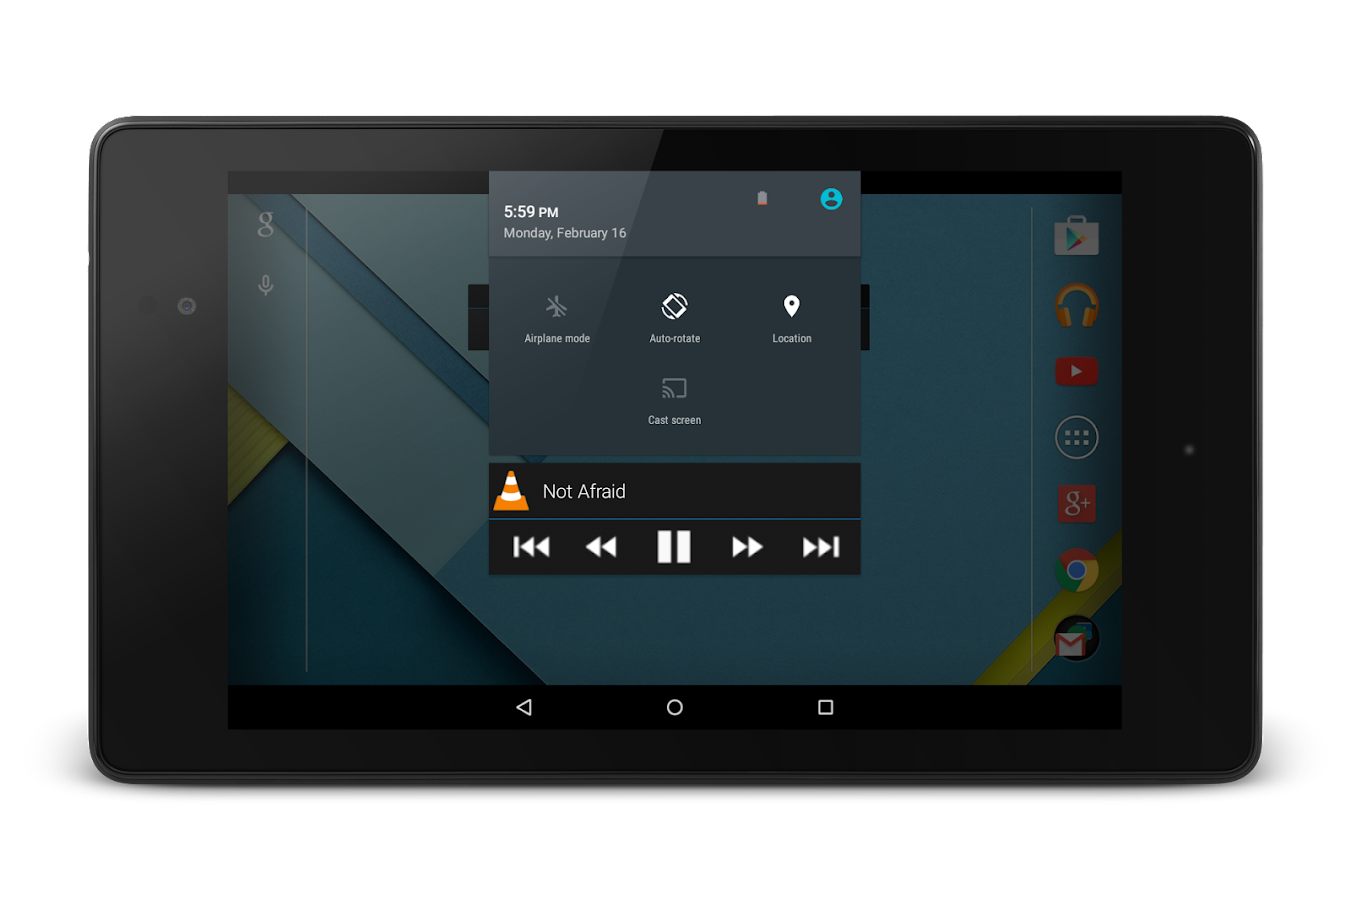 vlc mobile remote - pc & mac - android apps on google play